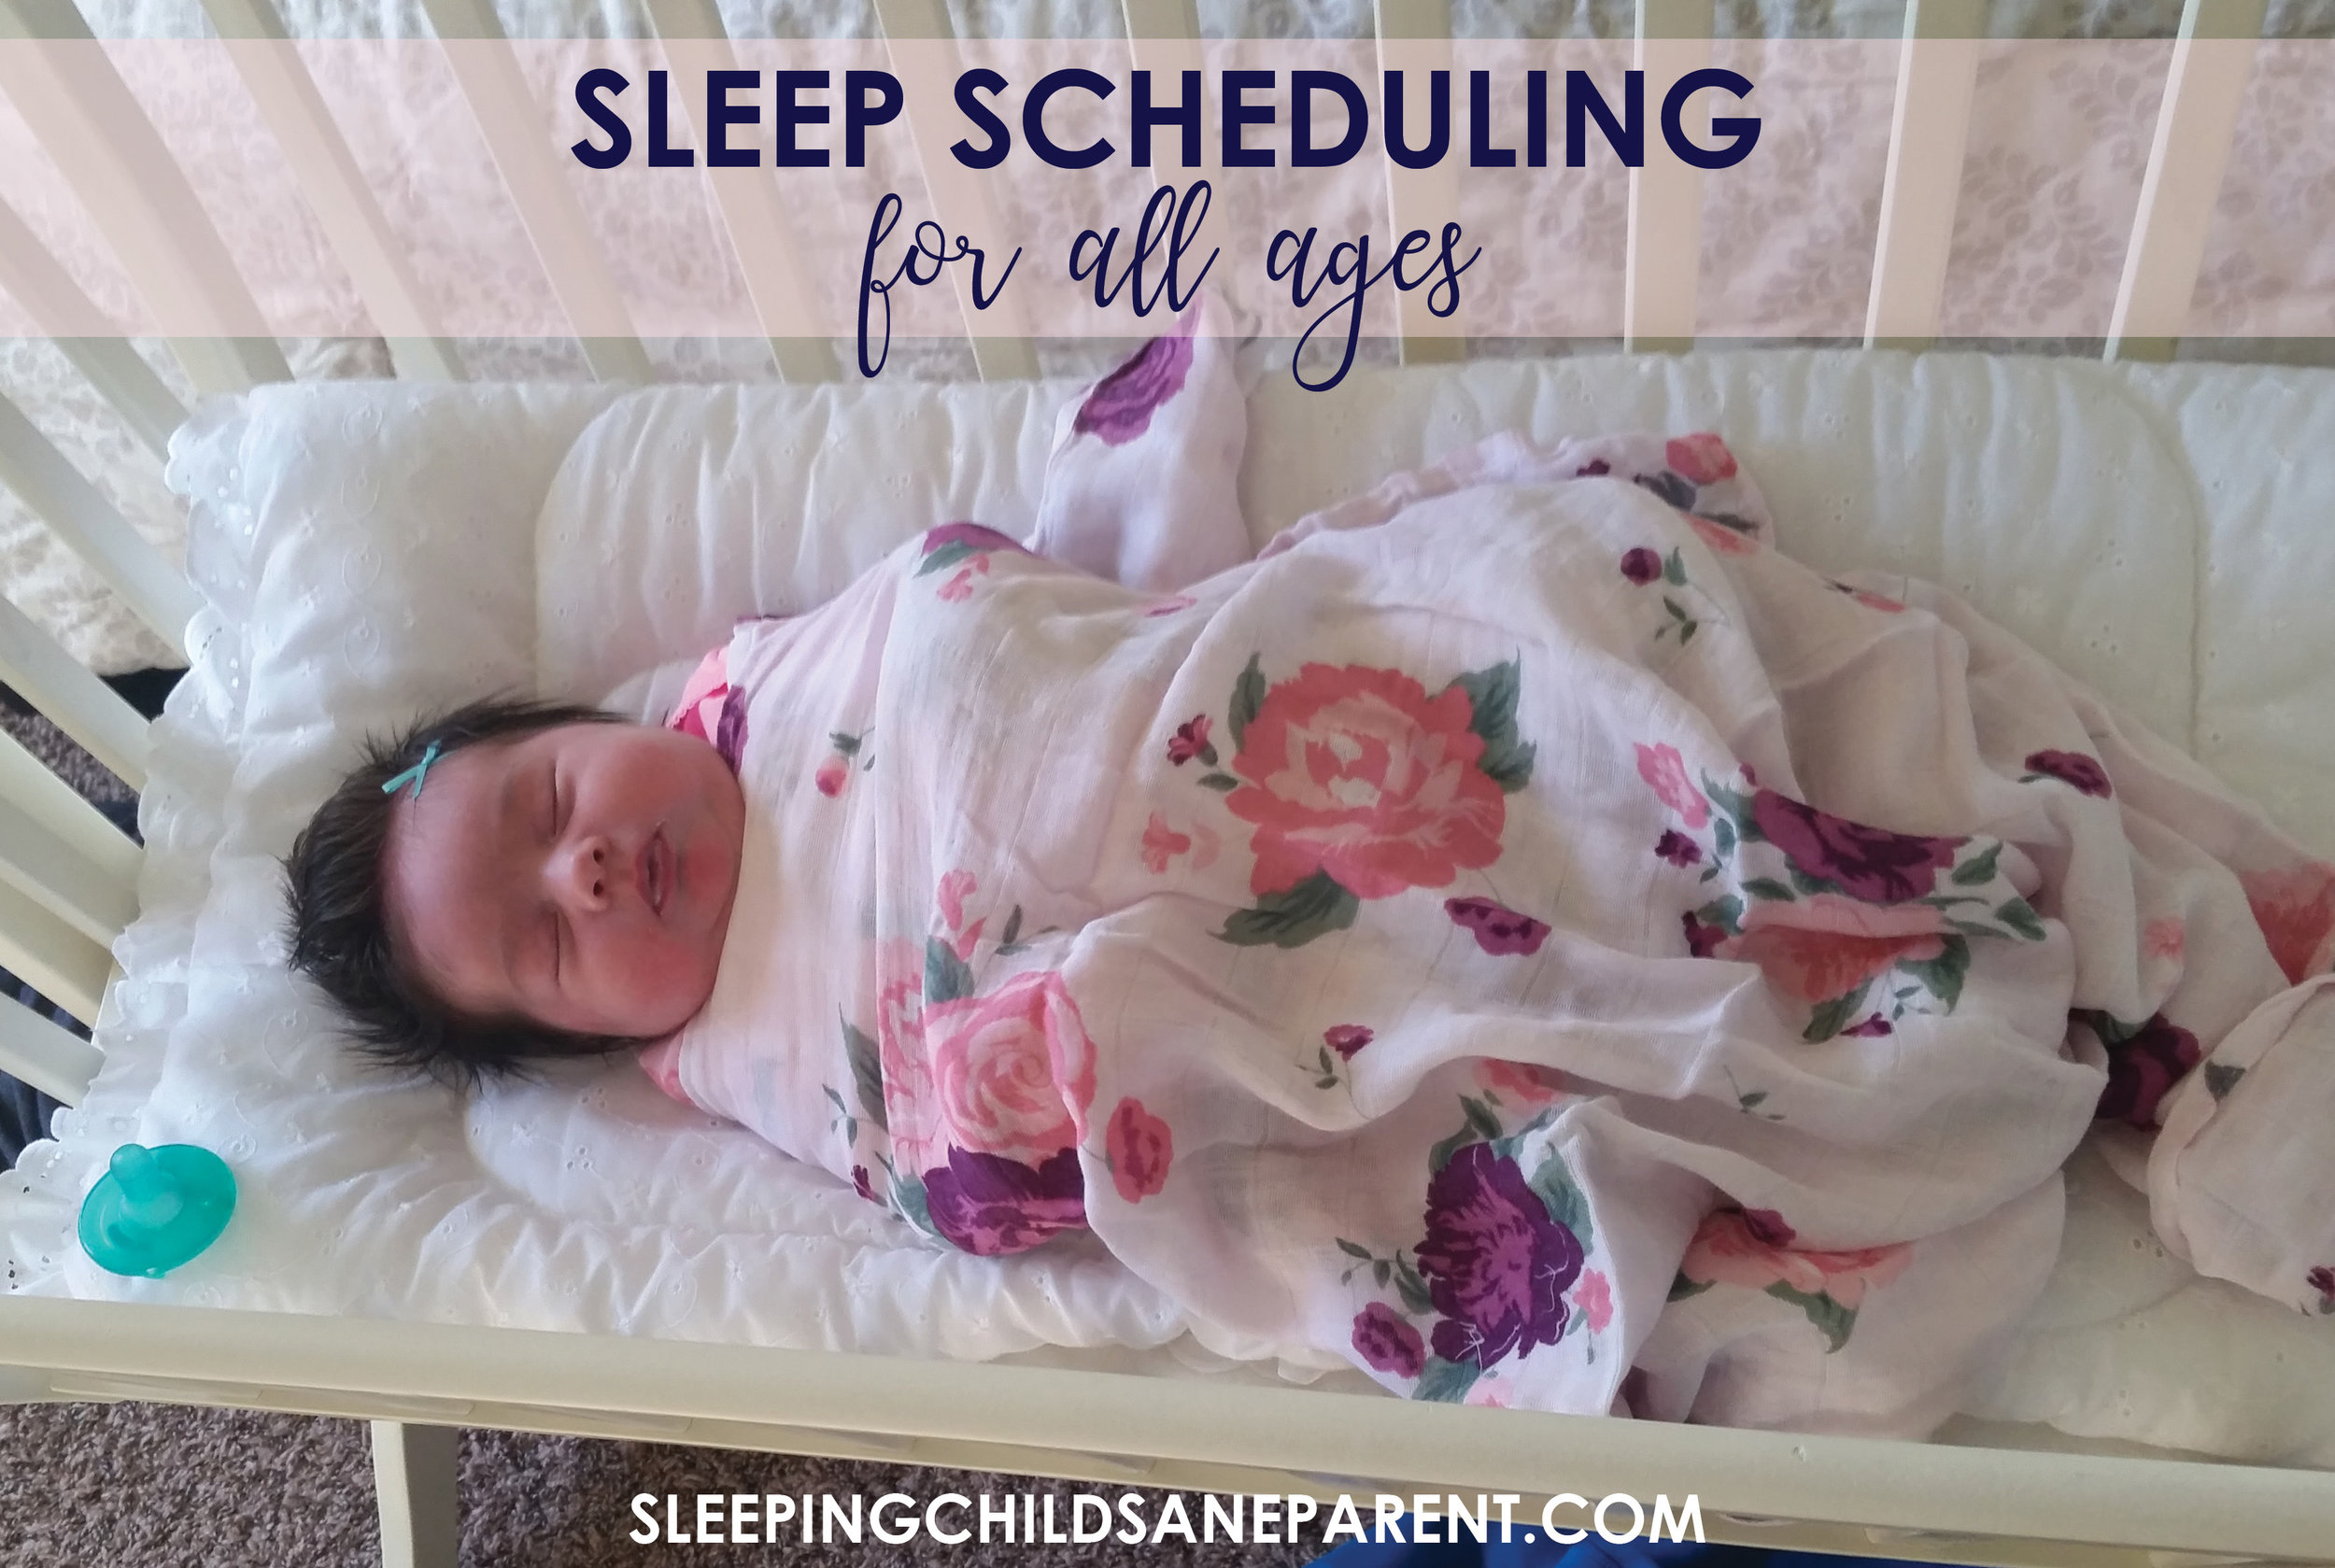 Check out this one simple blog post with links to popular posts about scheduling, bedtime, and sleeping through the night!